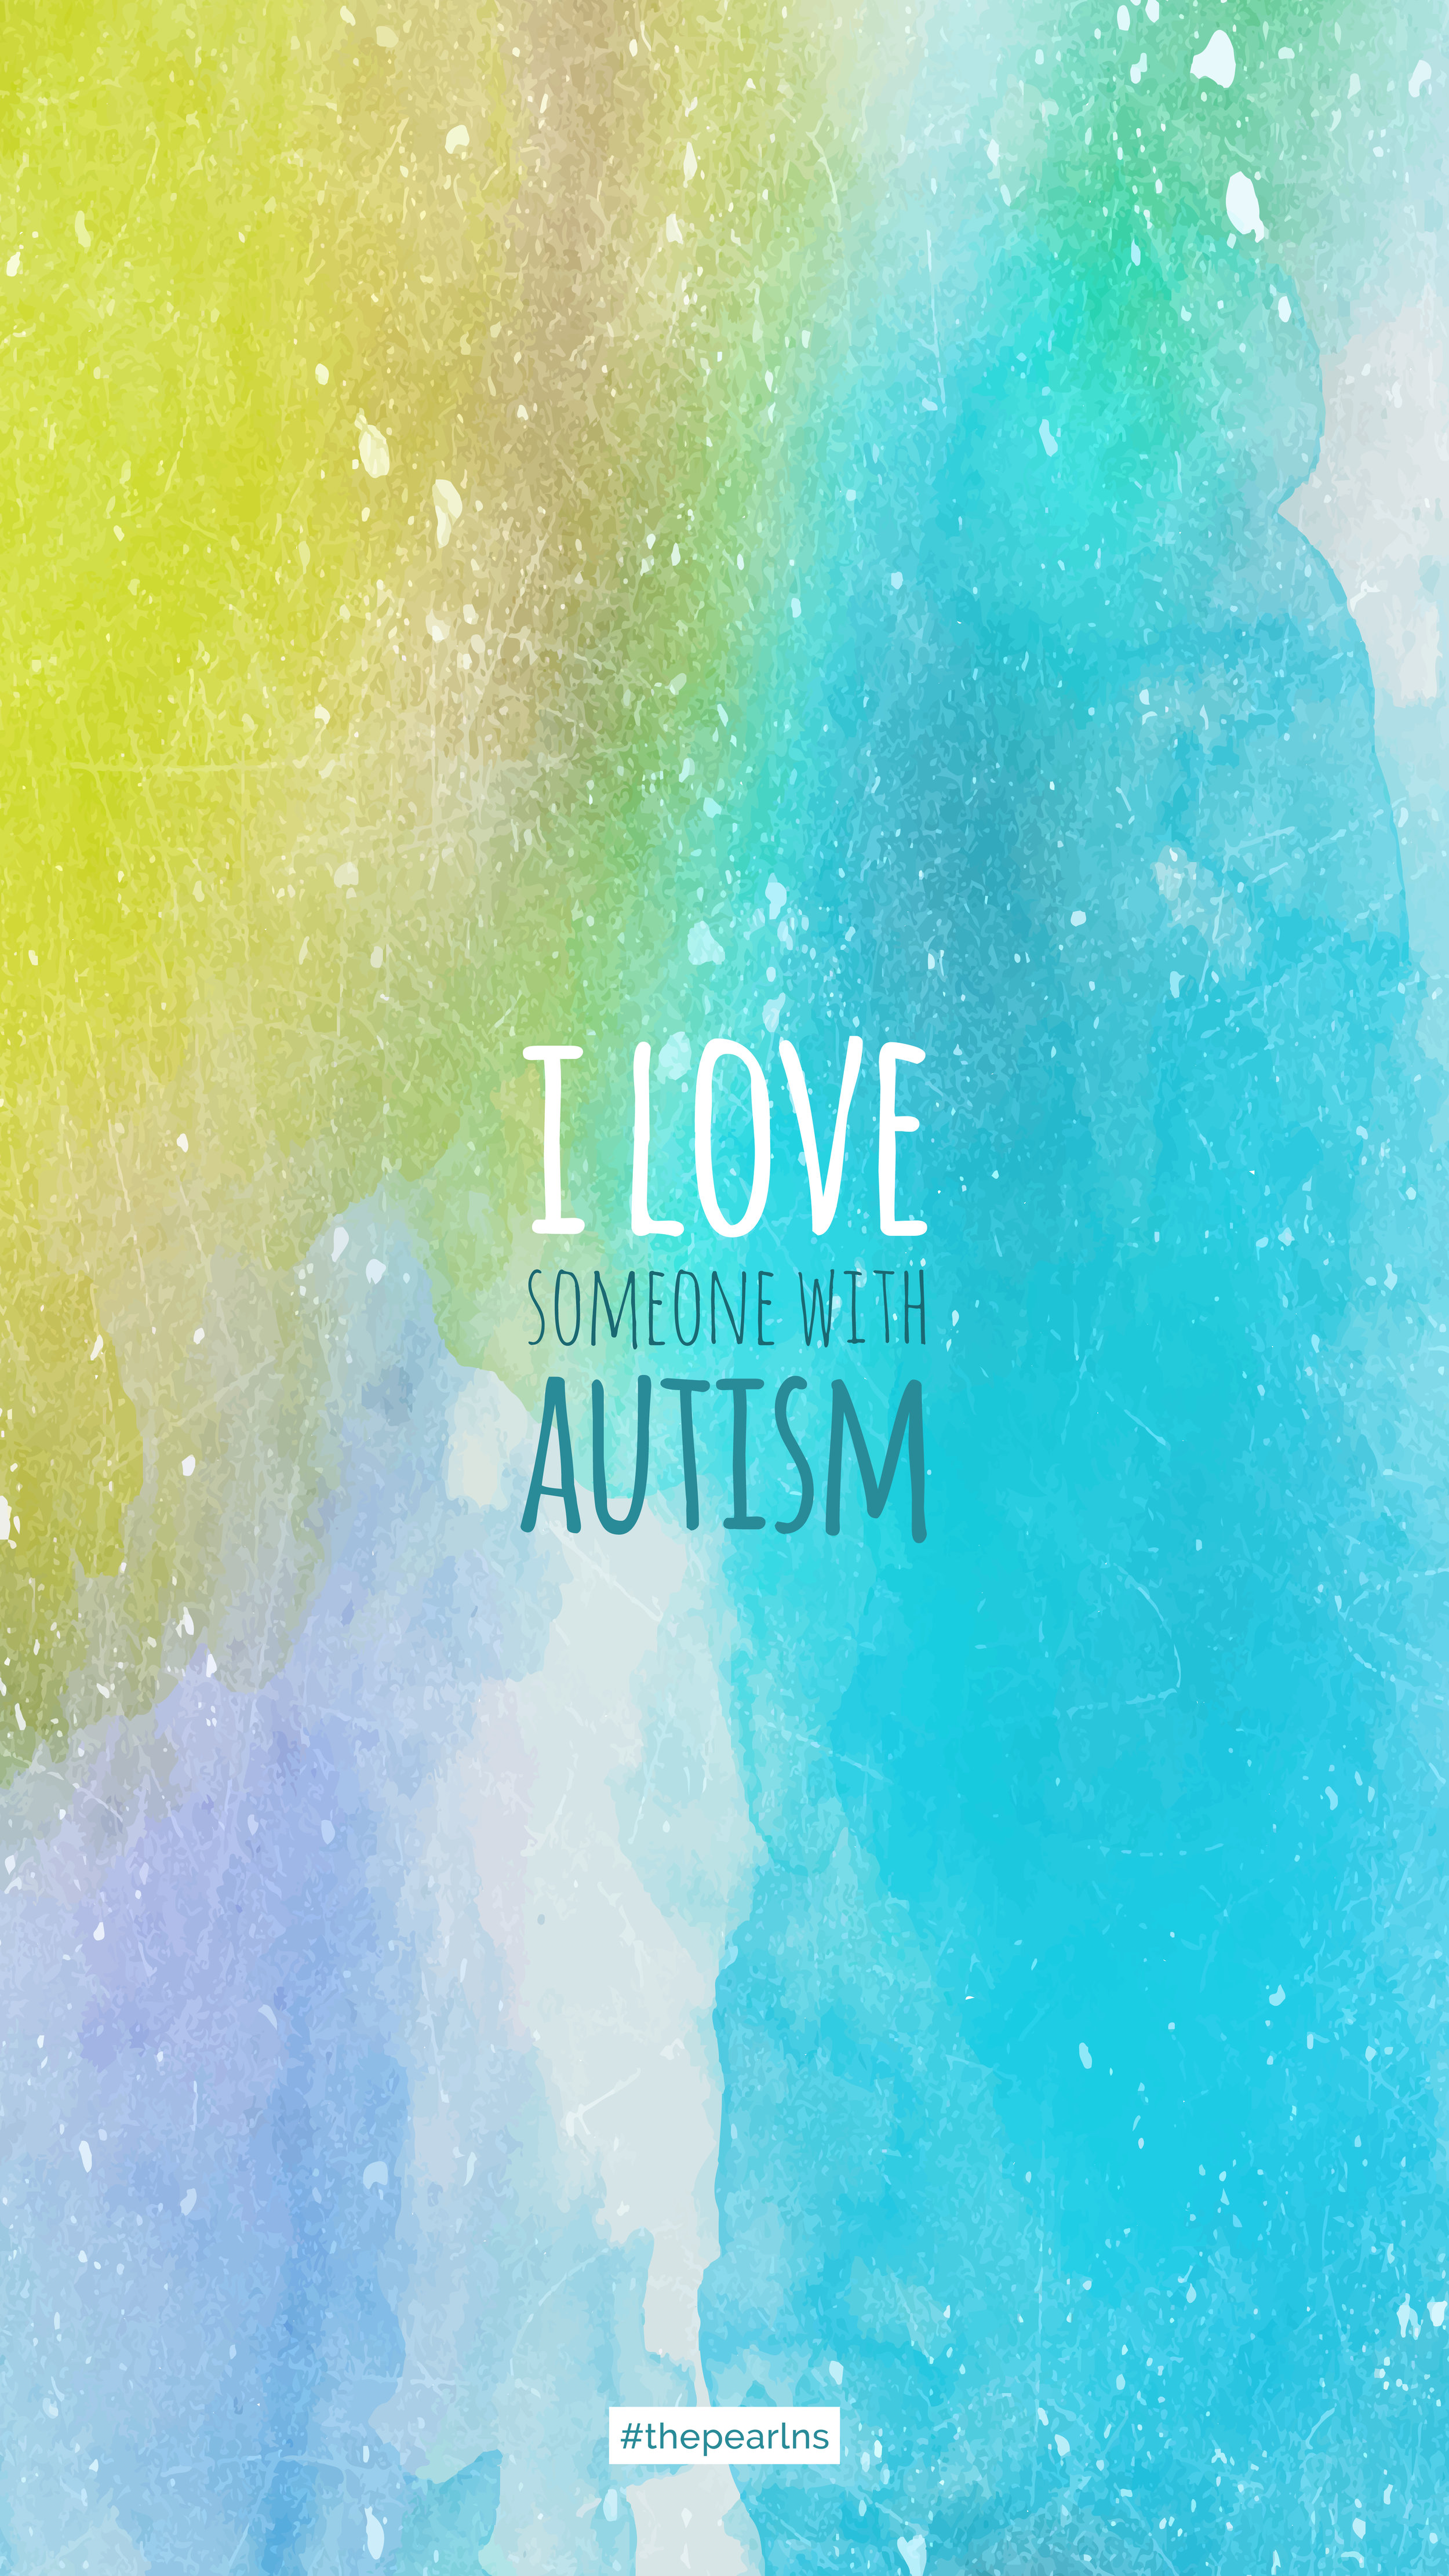 Desktop Wallpaper I Love Someone With Autism The Pearl